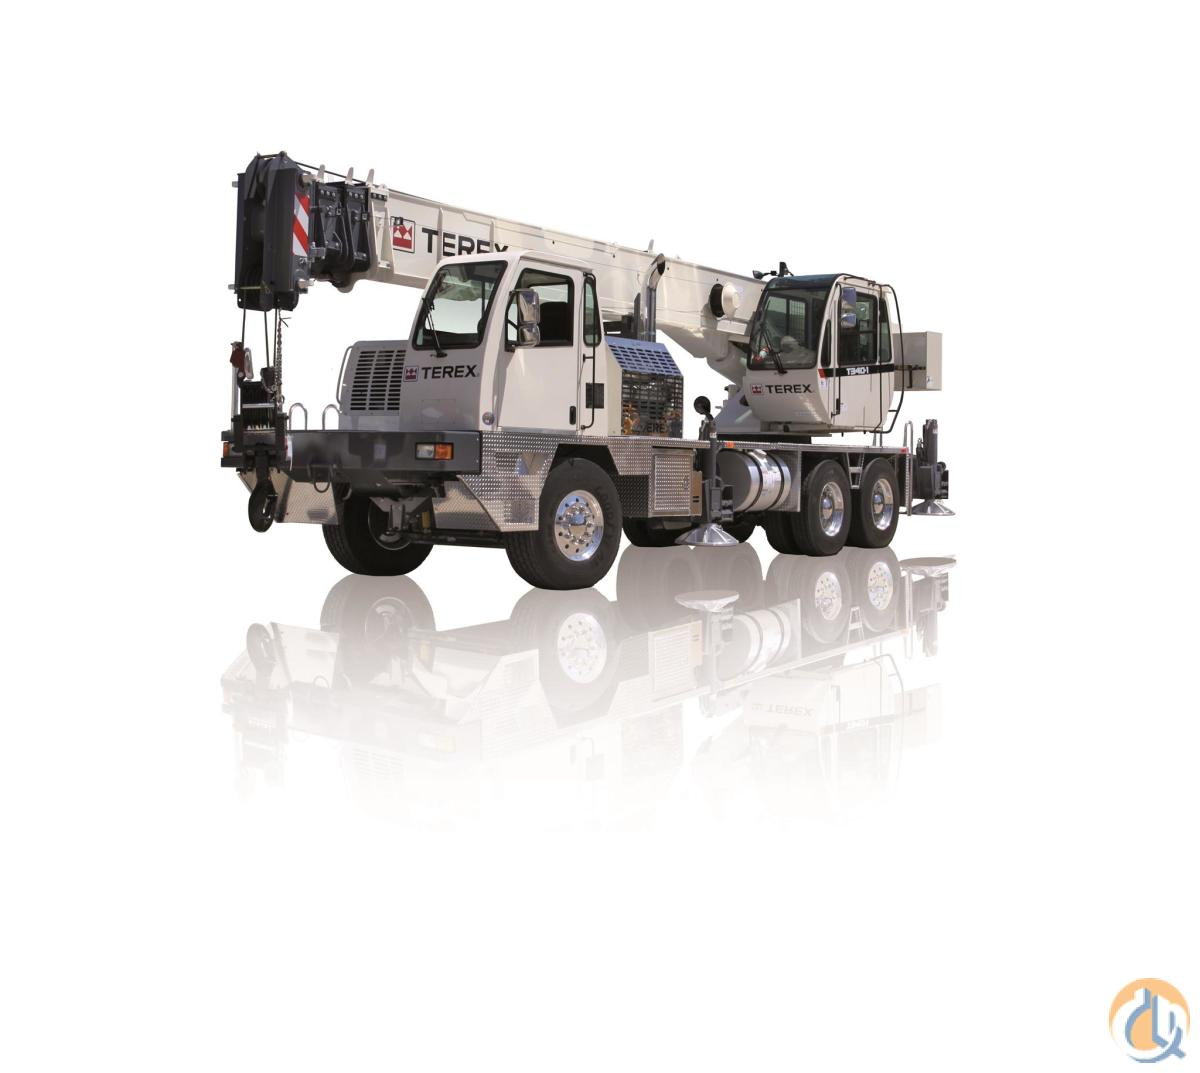 2016 TEREX T340-1 Crane for Sale in Bridgeview Illinois on CraneNetworkcom